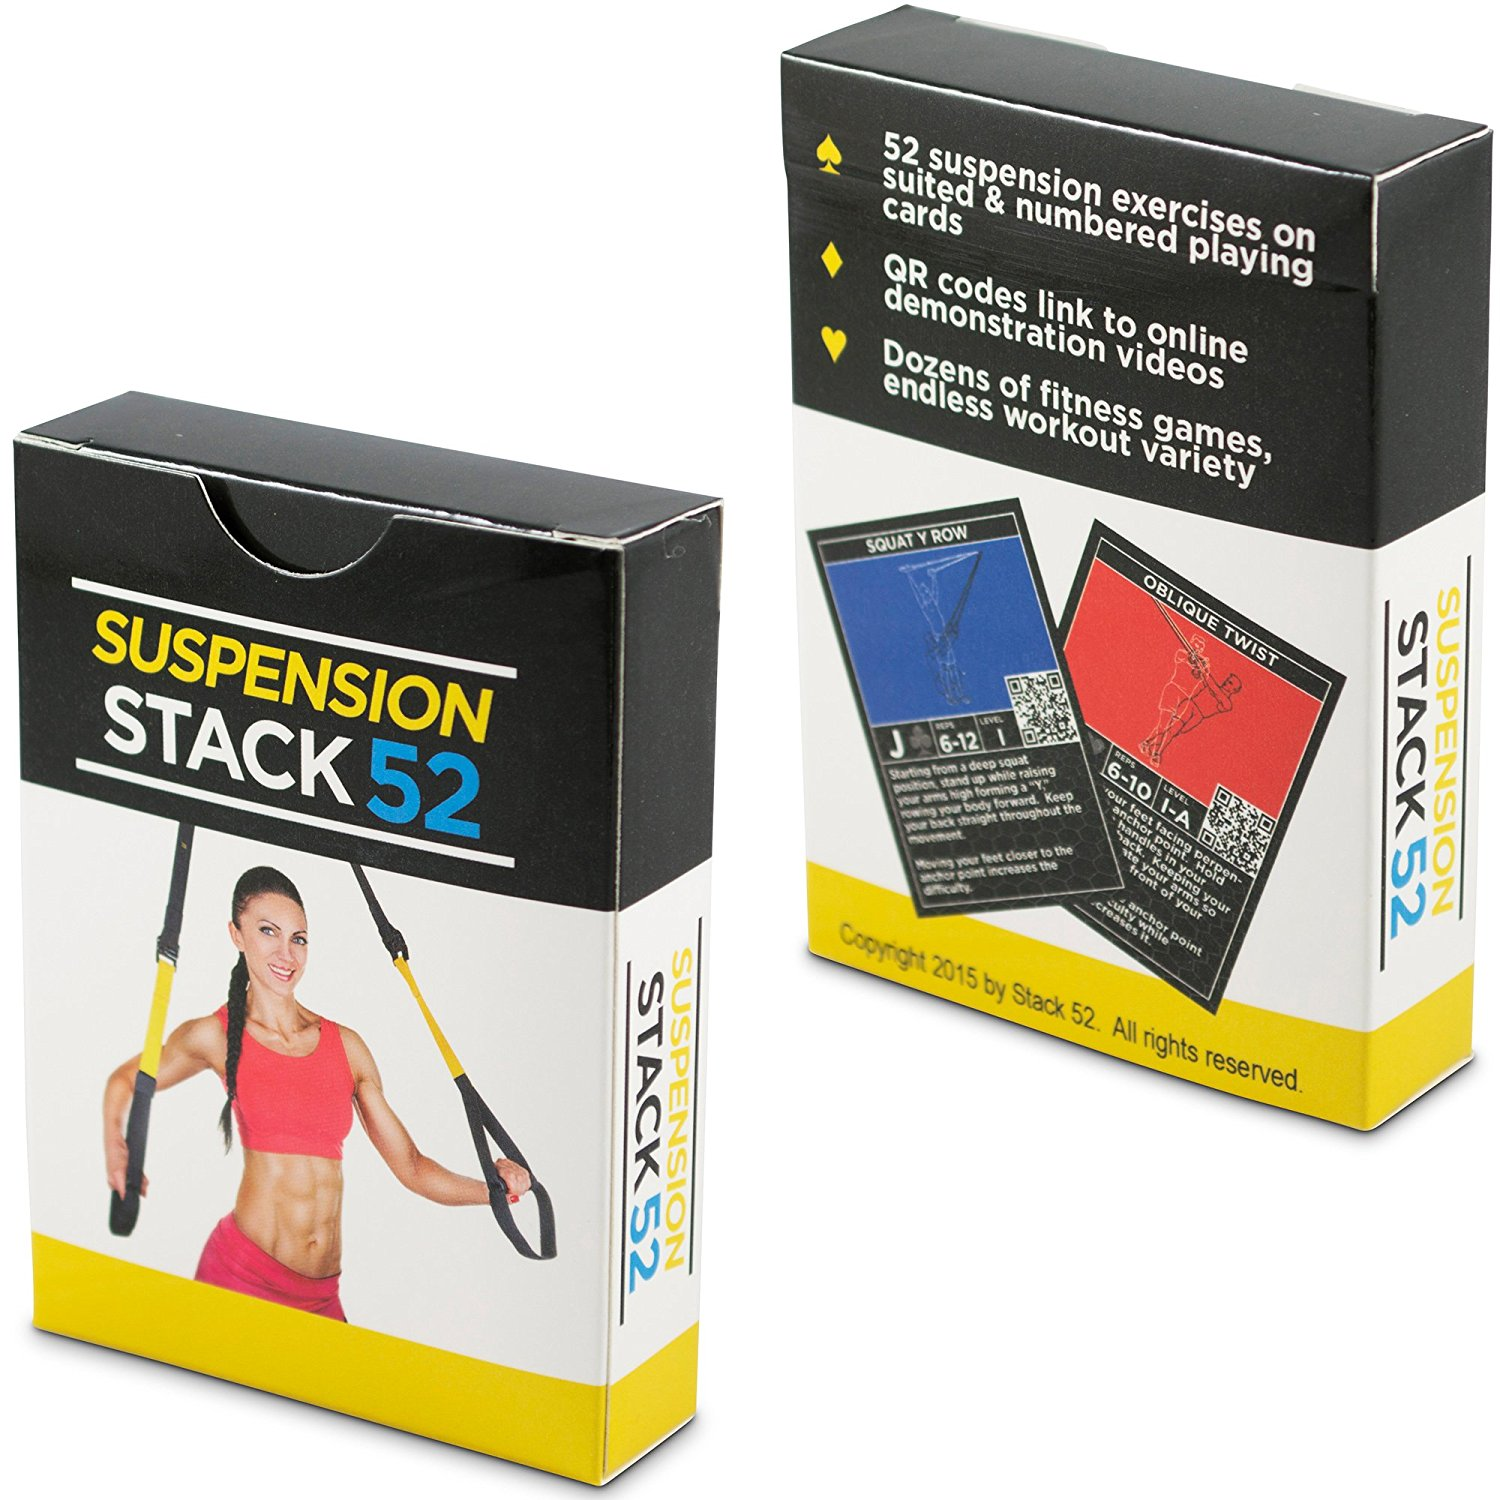 Stack 52 Suspension Exercise Cards